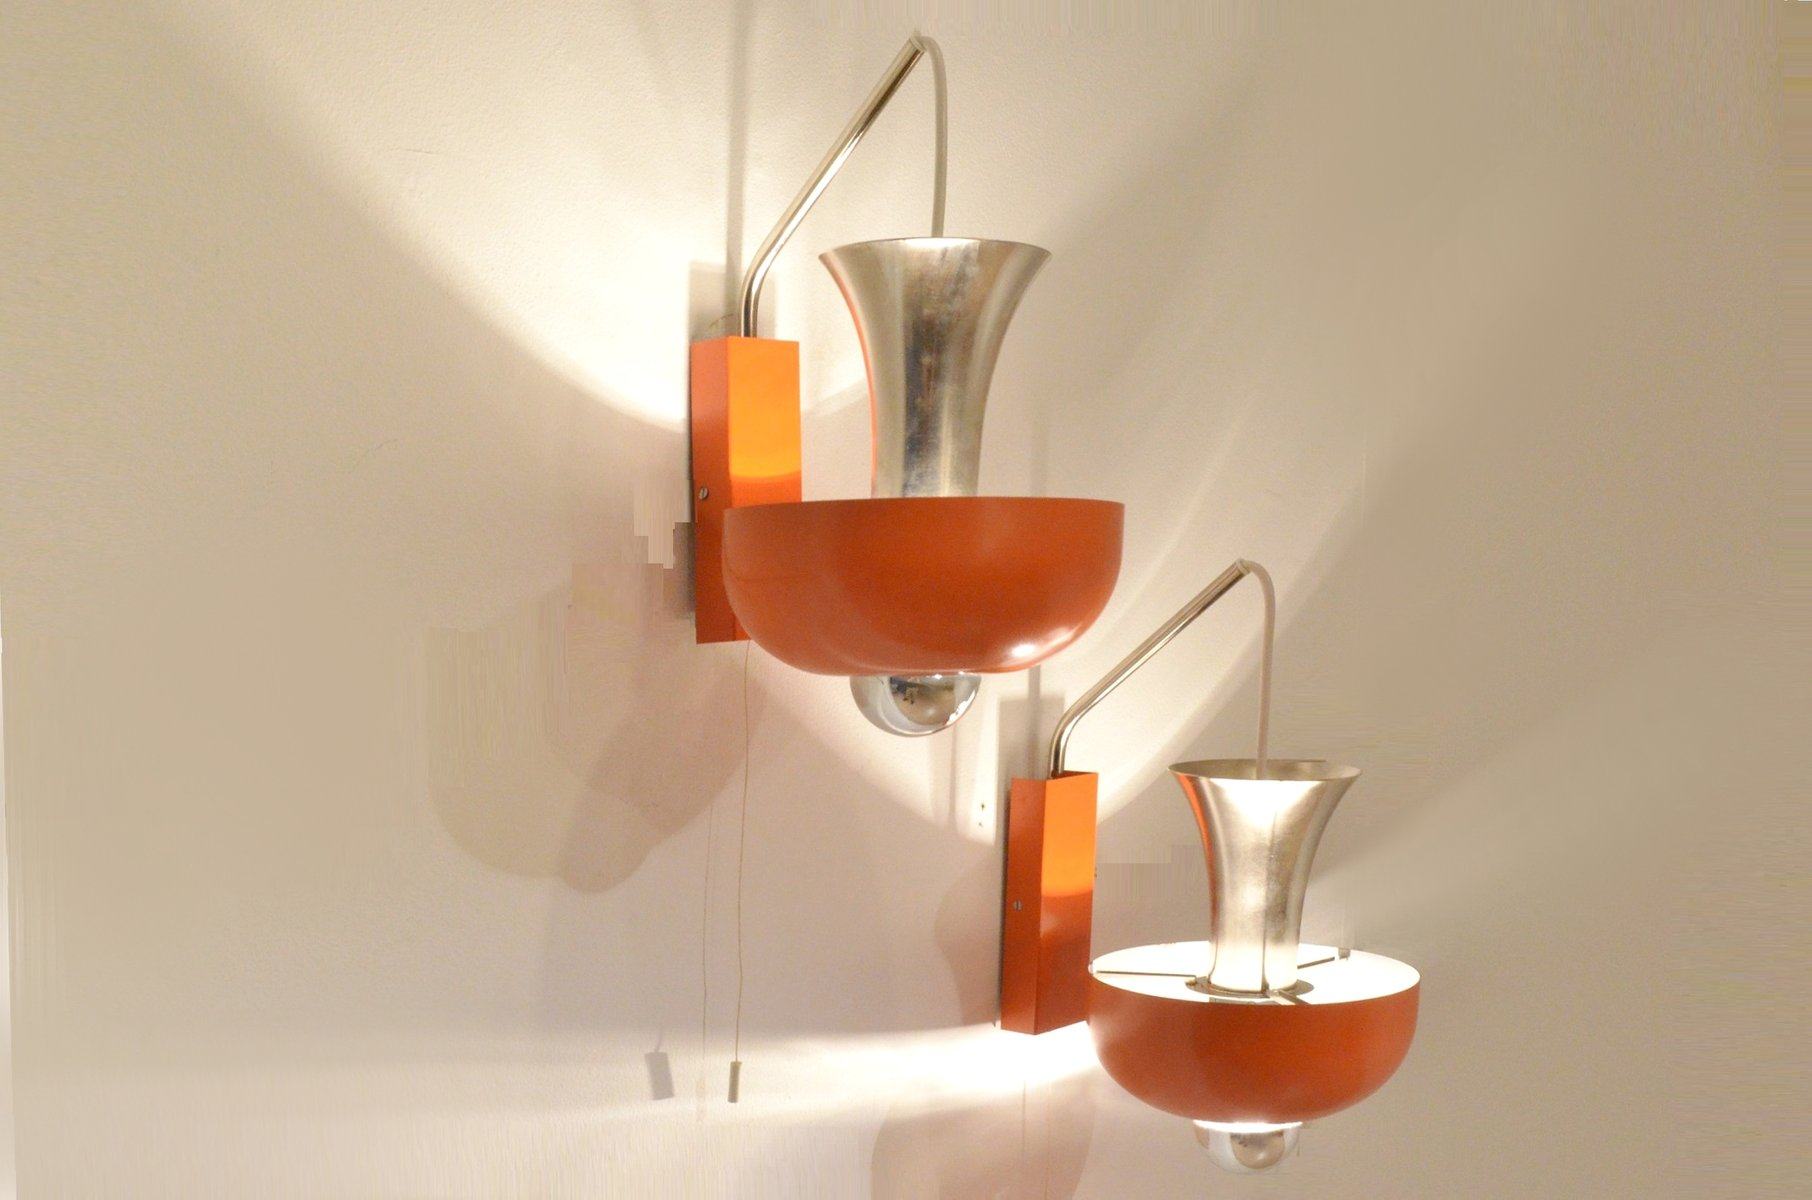 Danish Design Space Age Orange & Chrome Wall Lamps, Set of 2 for sale at Pamono